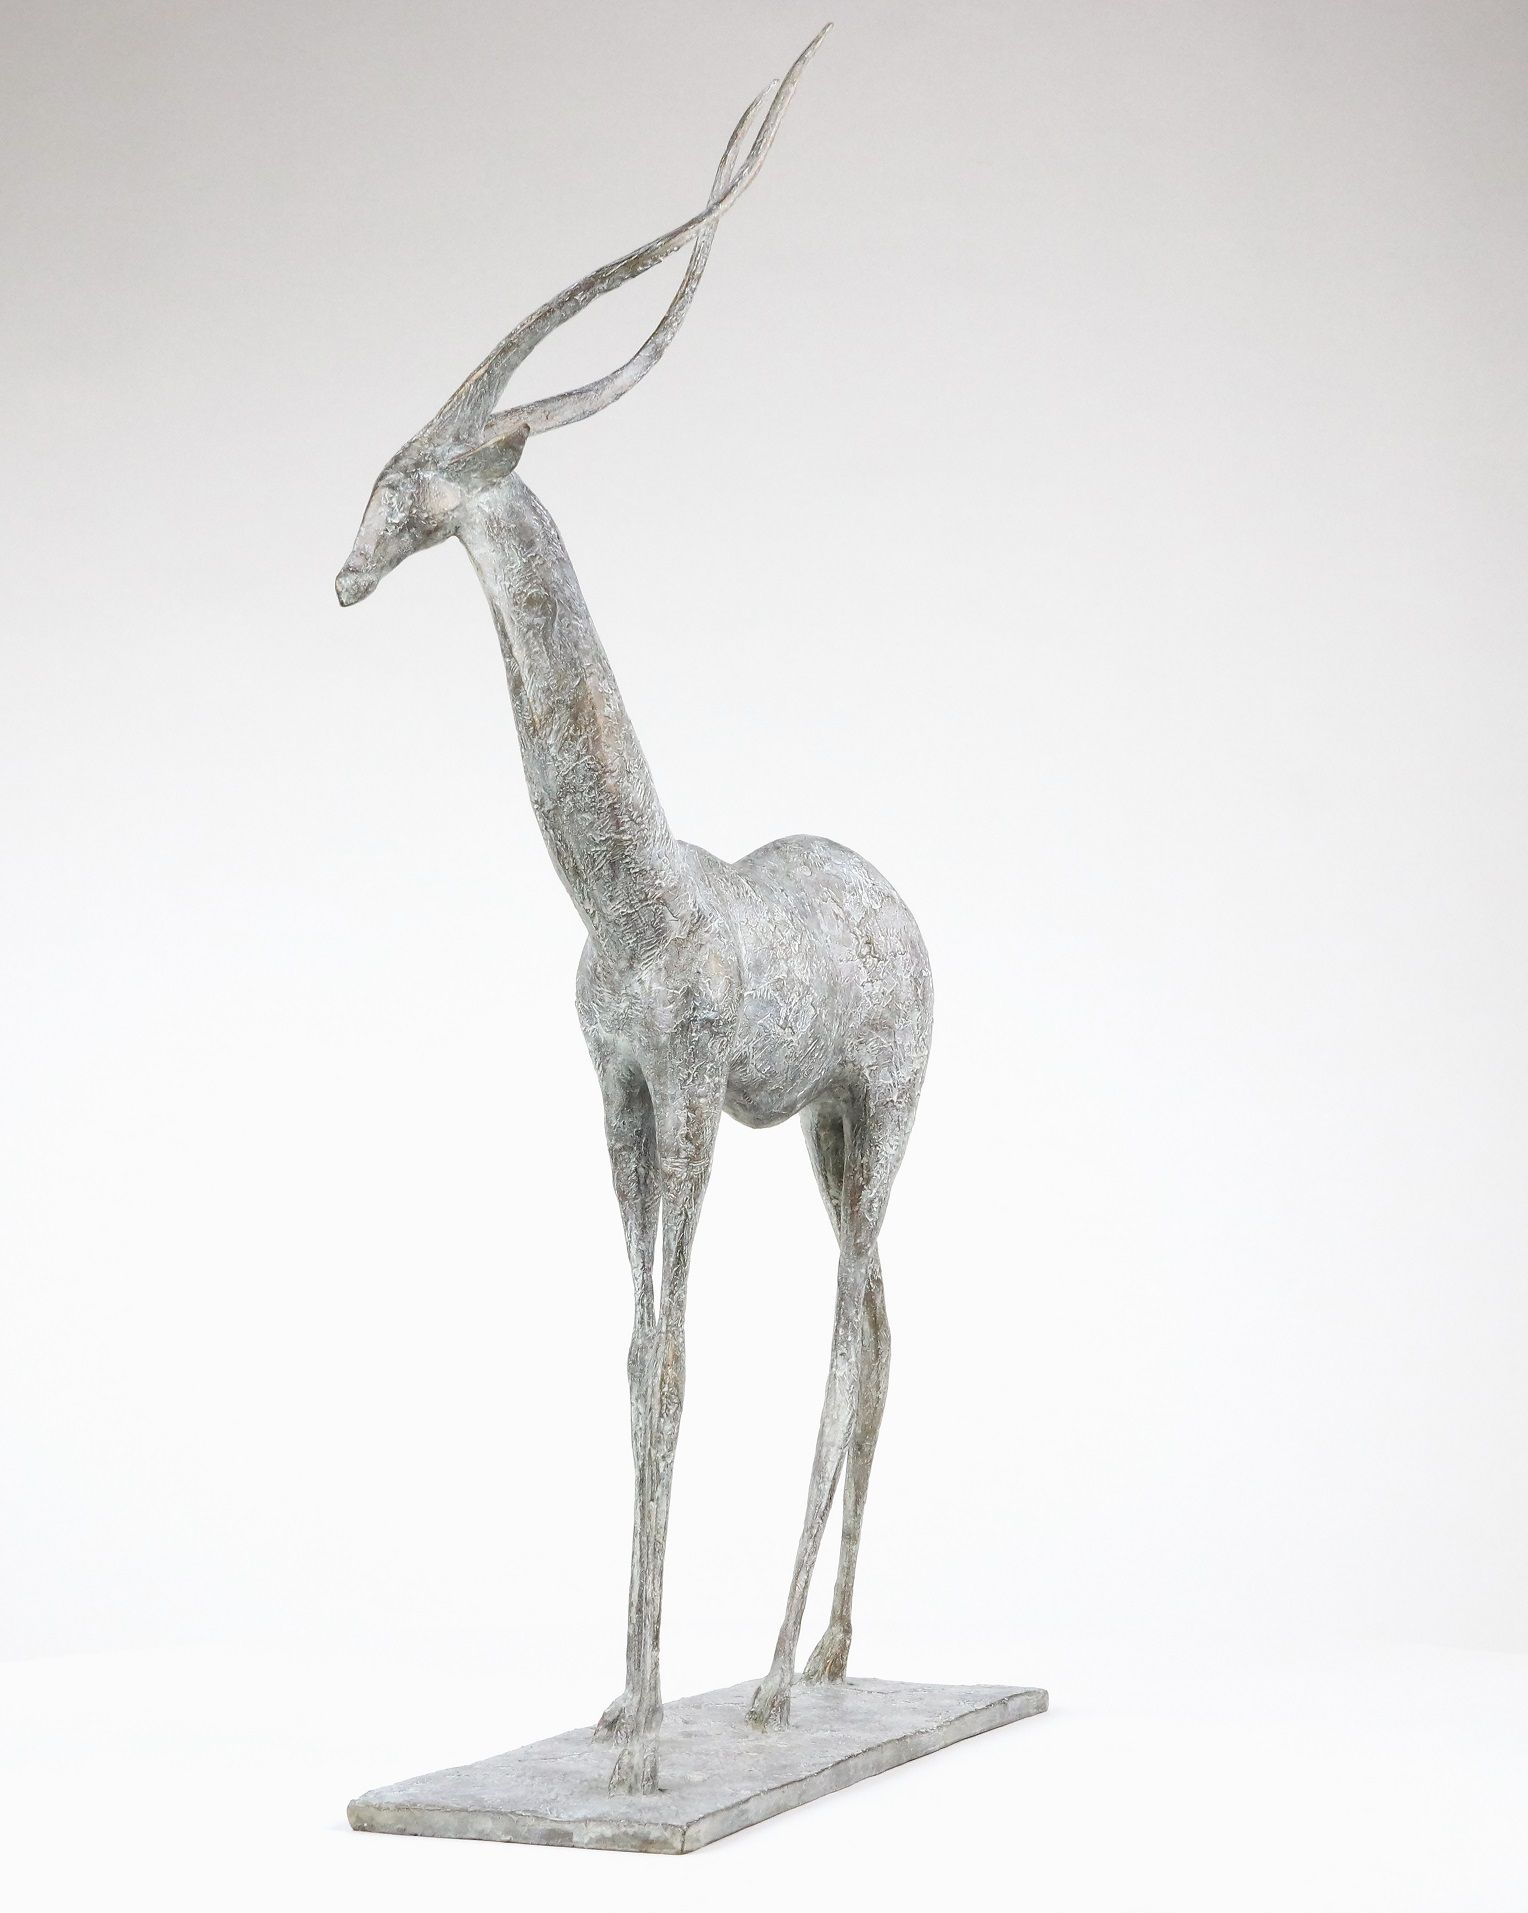 Gazelle I,Pierre Yermia,Sculpture, detail 4